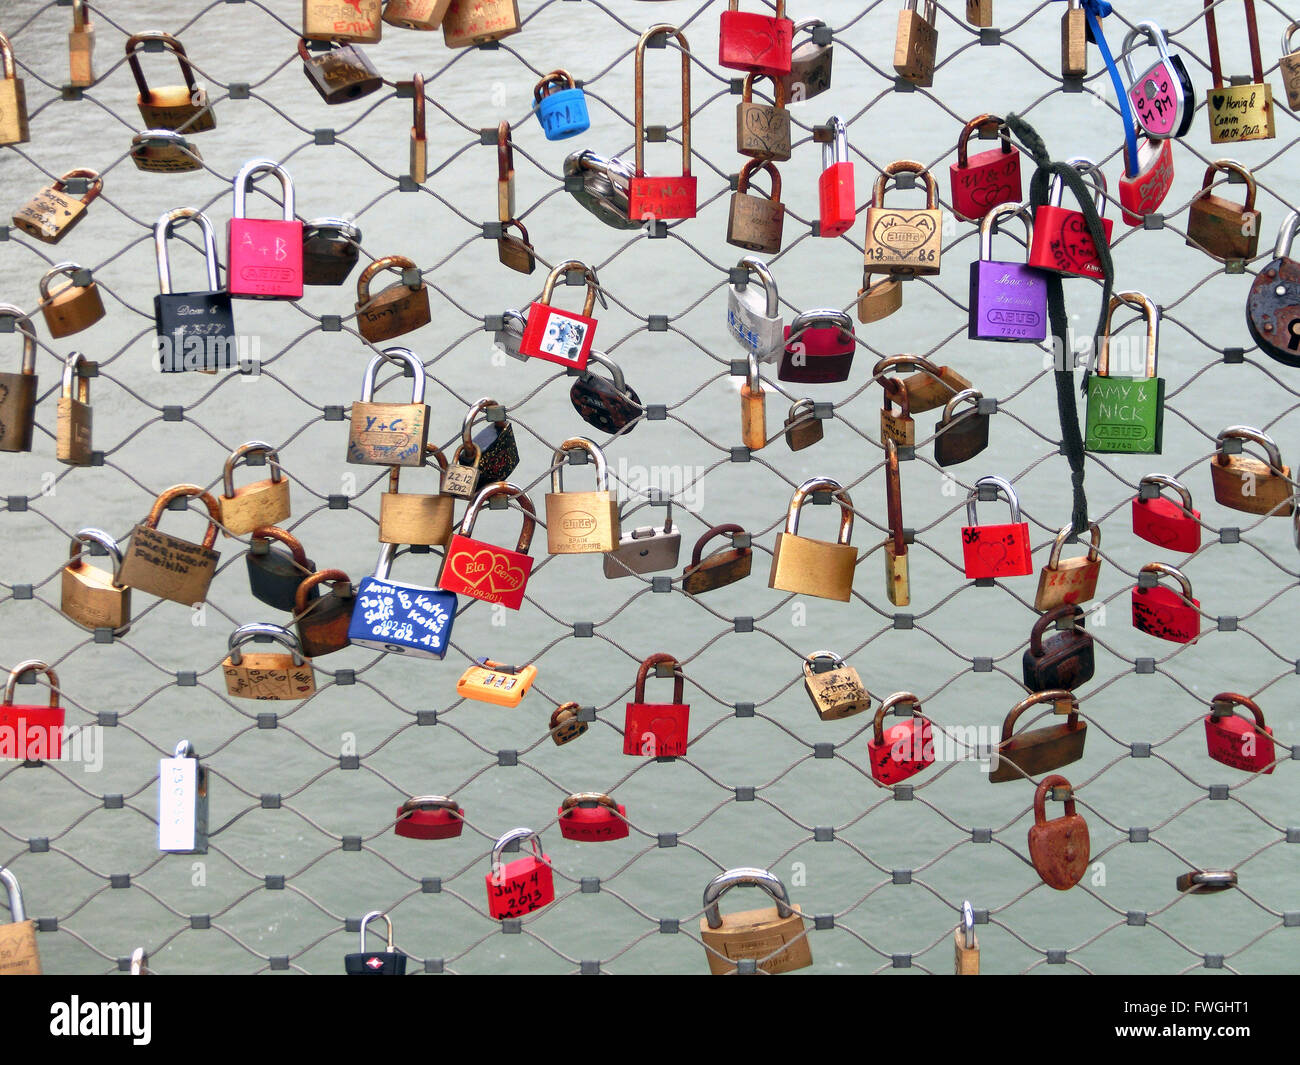 Padlocks In Chainlink Fence - Stock Image